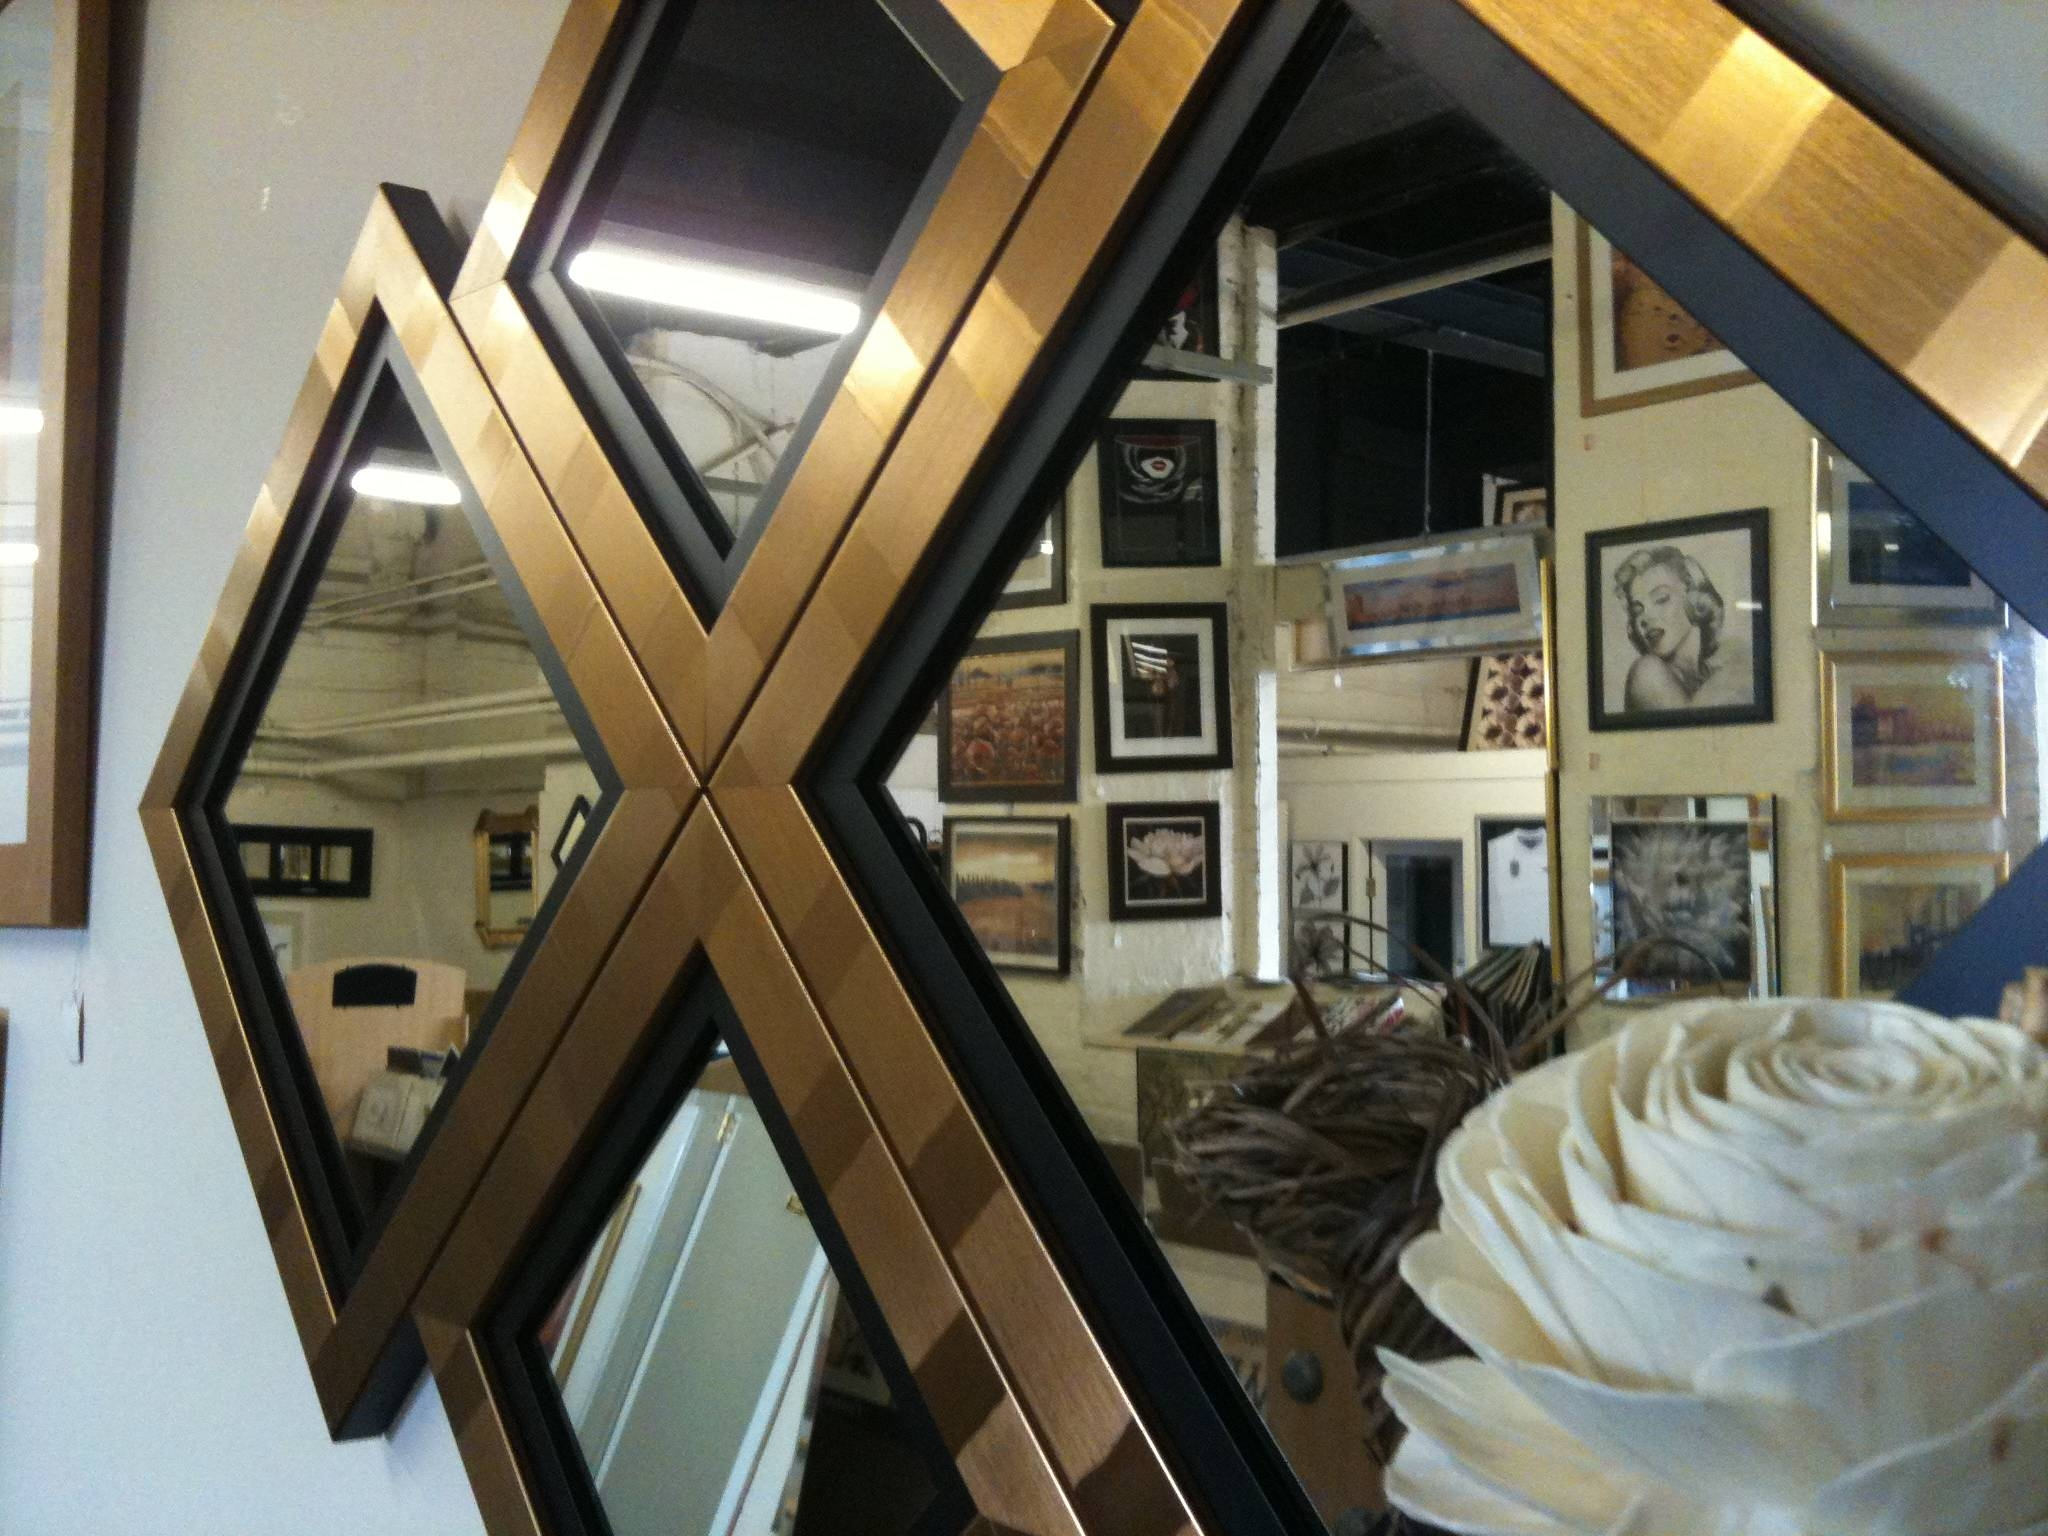 New Gold/black Diamond Wall Mirror 115 X 86 Cm regarding Black and Gold Wall Mirrors (Image 12 of 15)